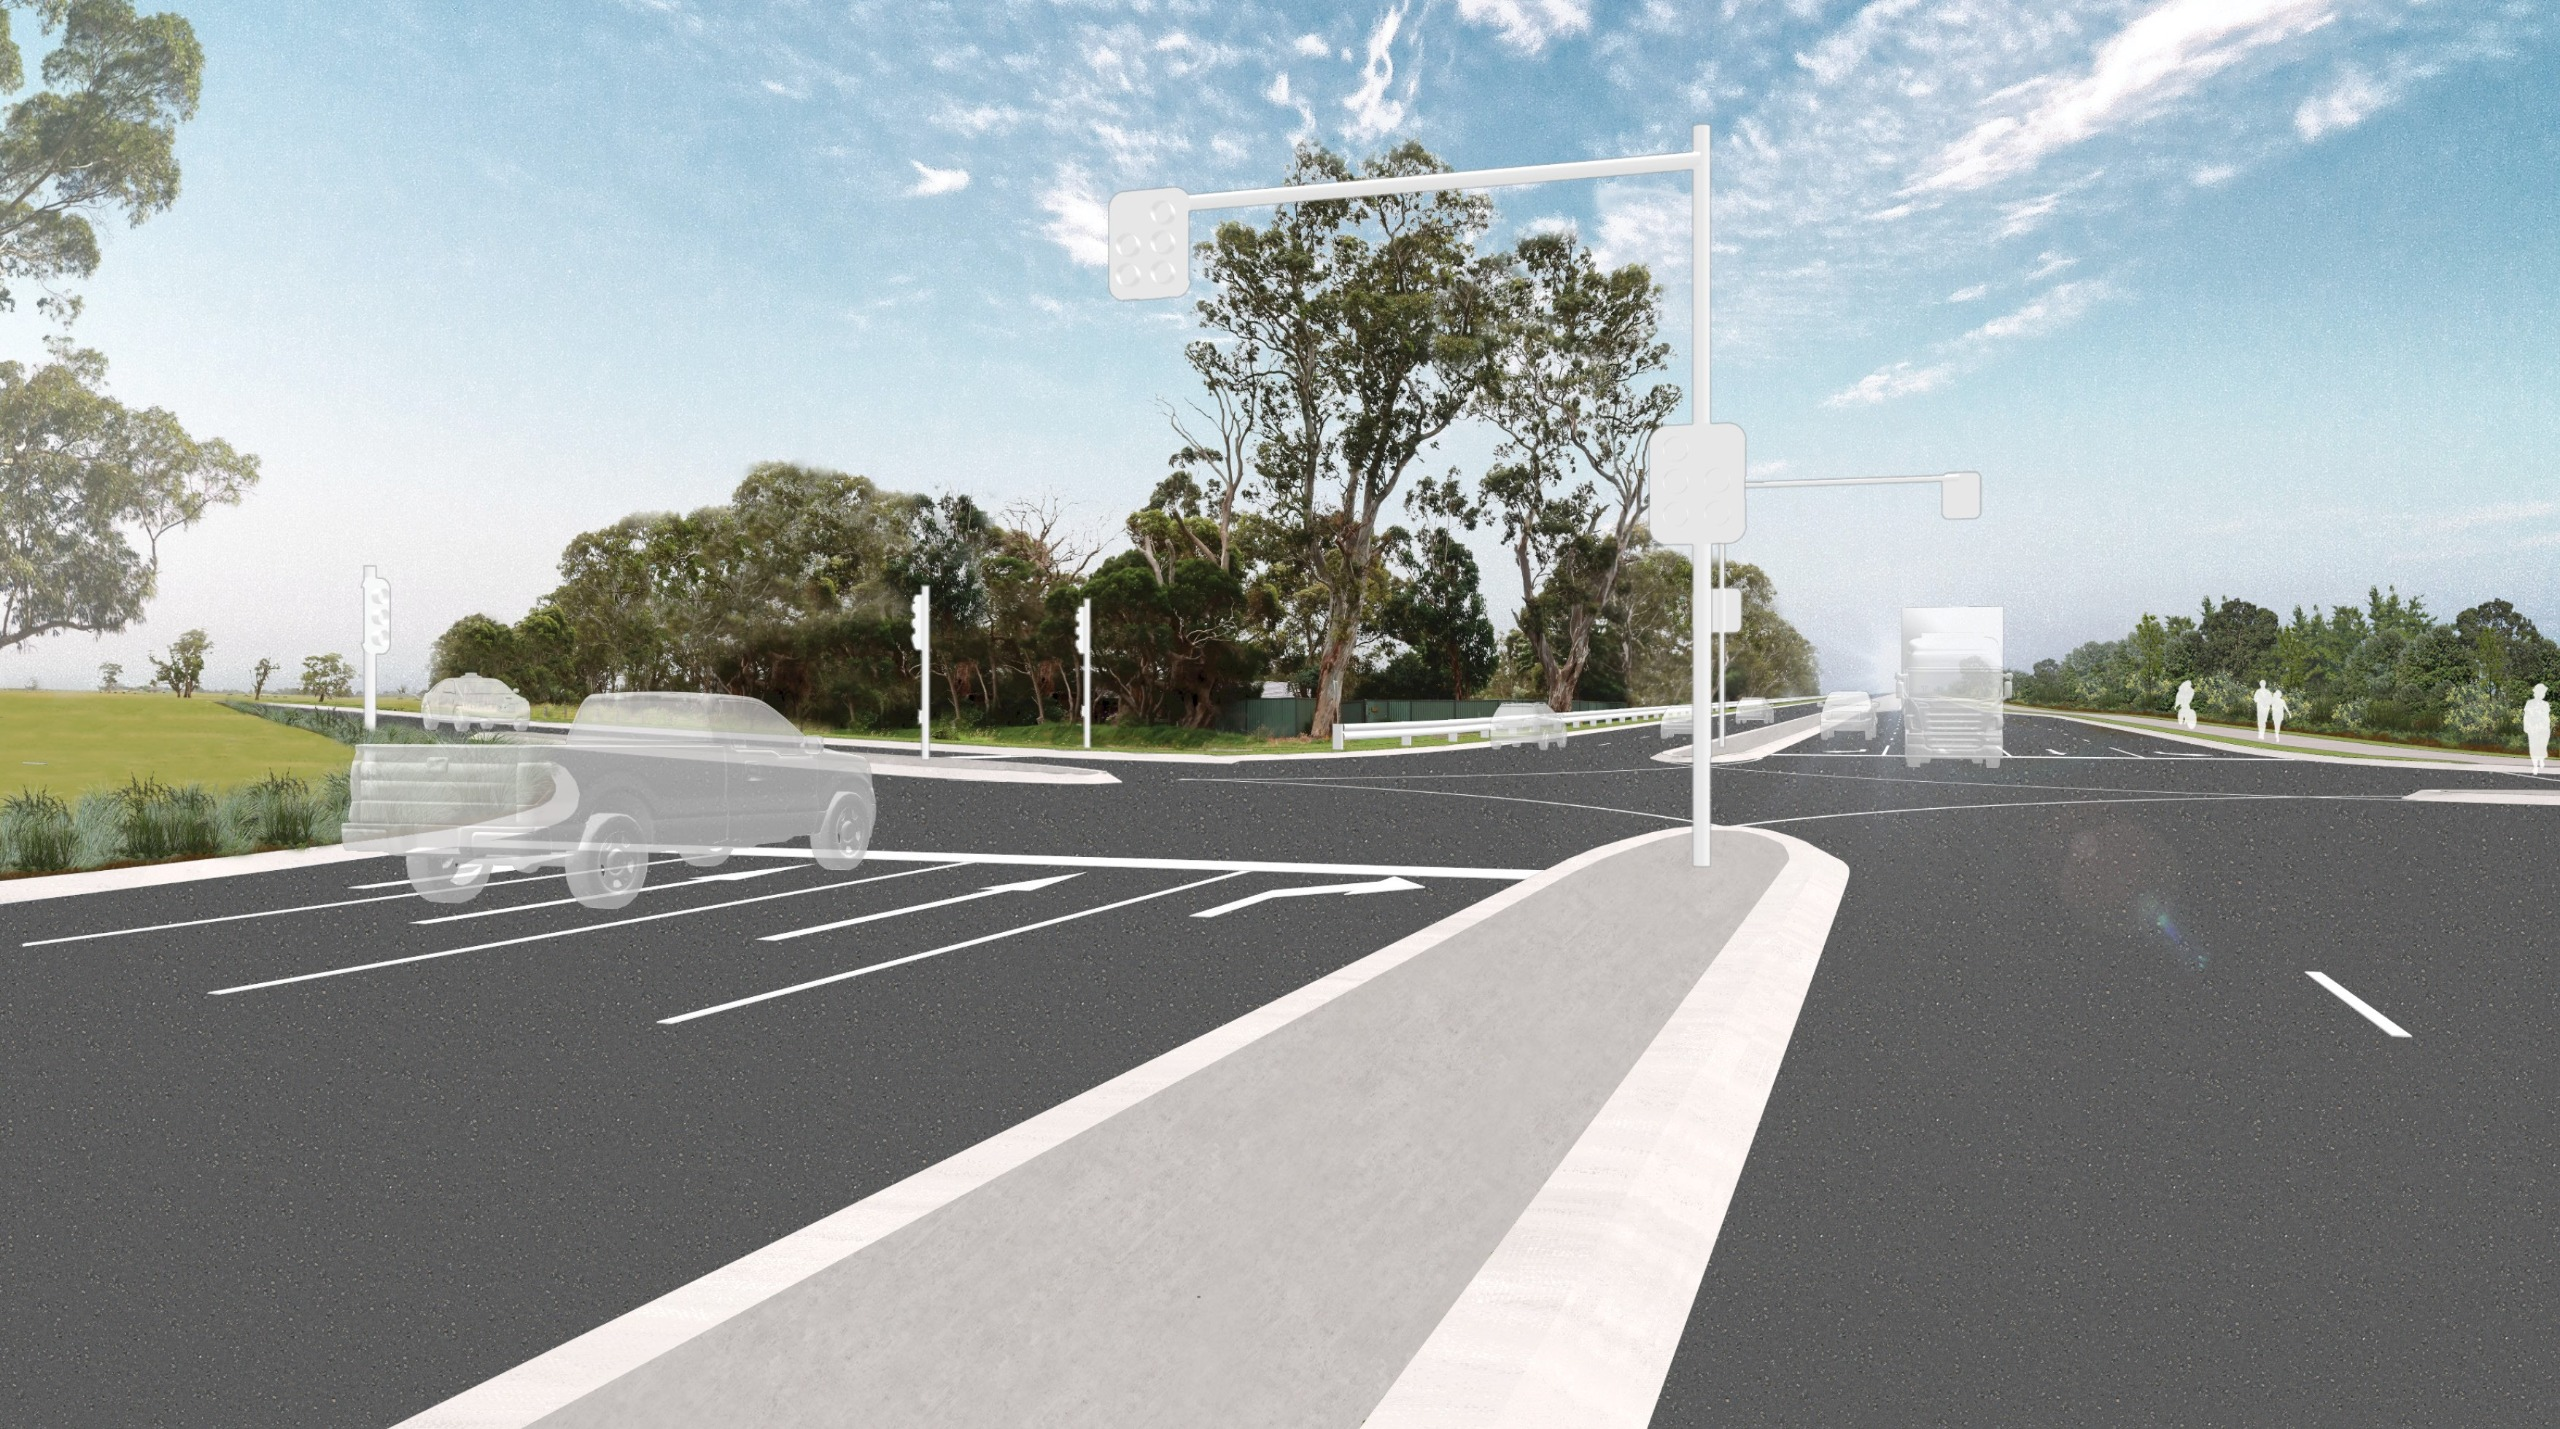 Artist's impression of Taylors Road intersection 15 years after project completion